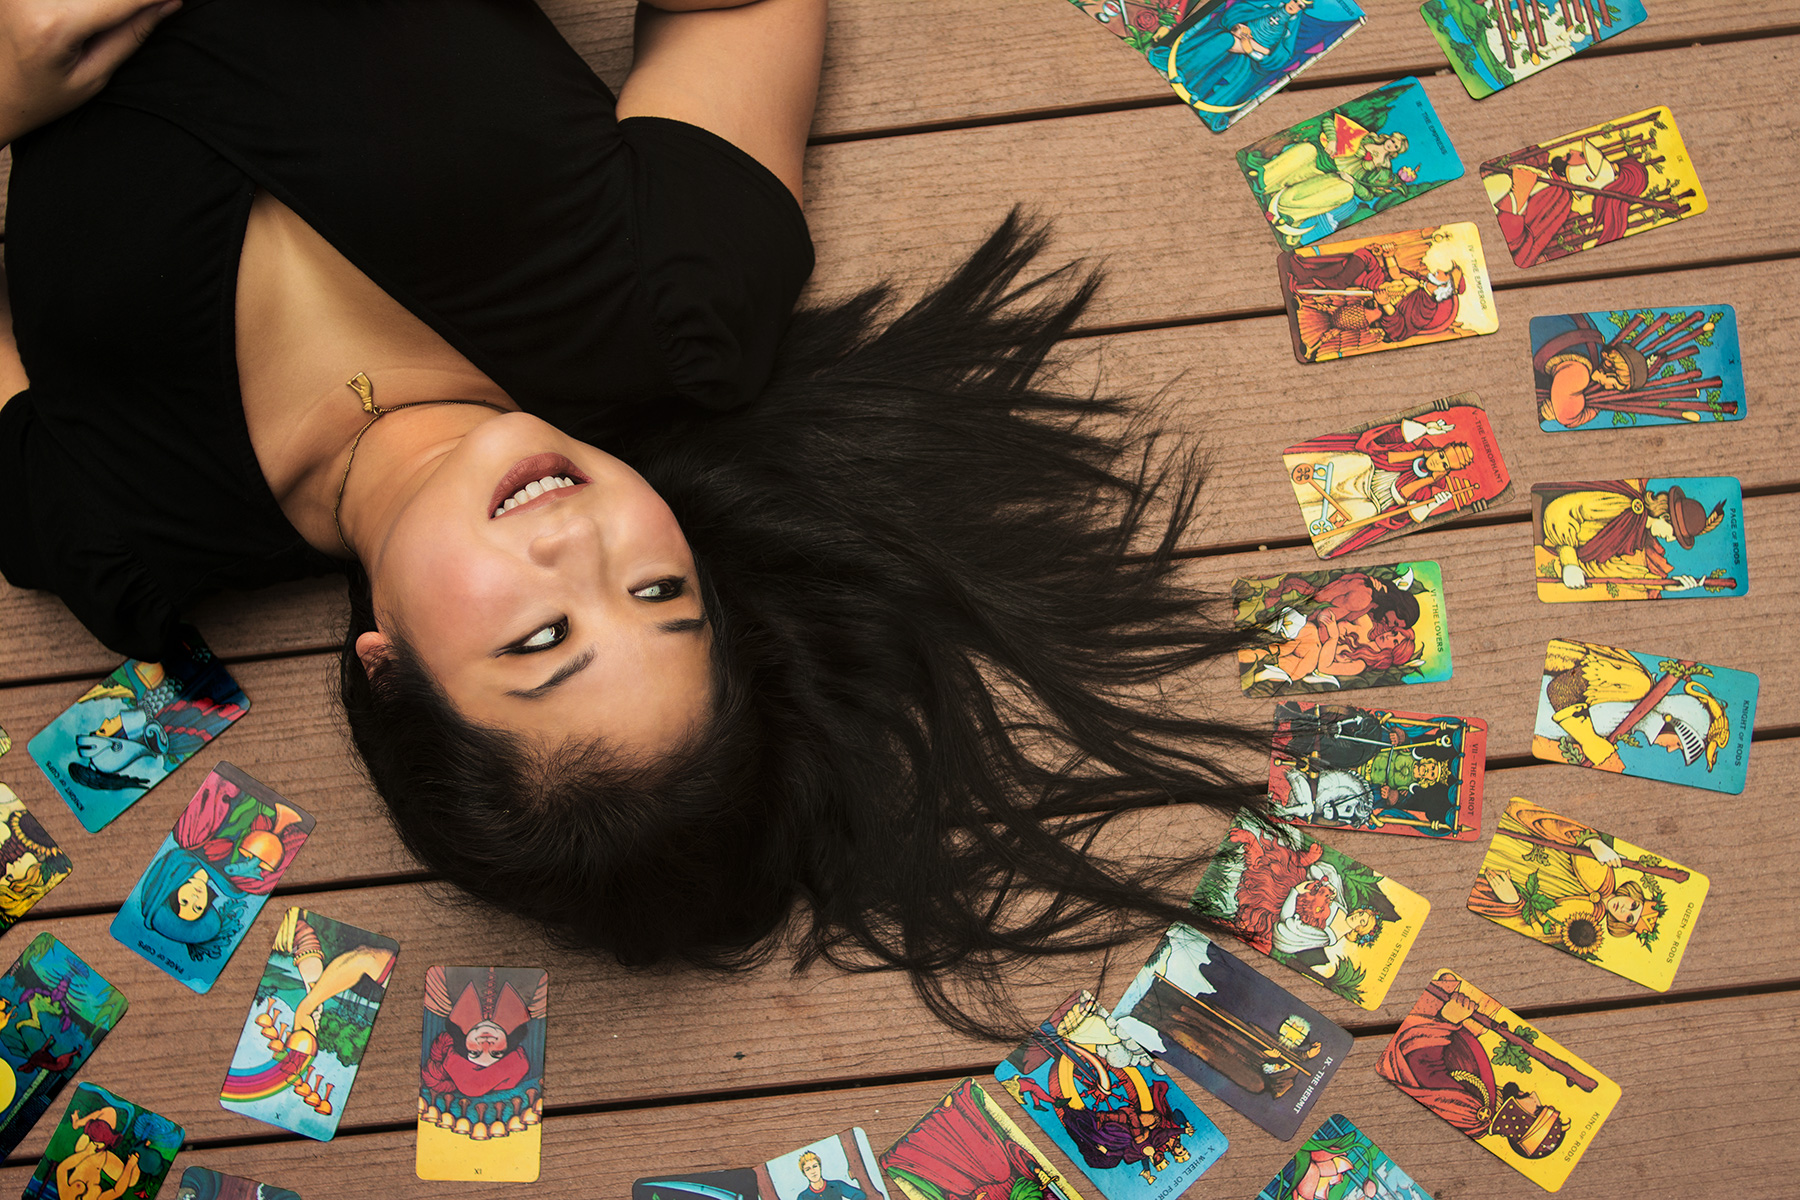 Tarot Card Reading on Free Love Romance